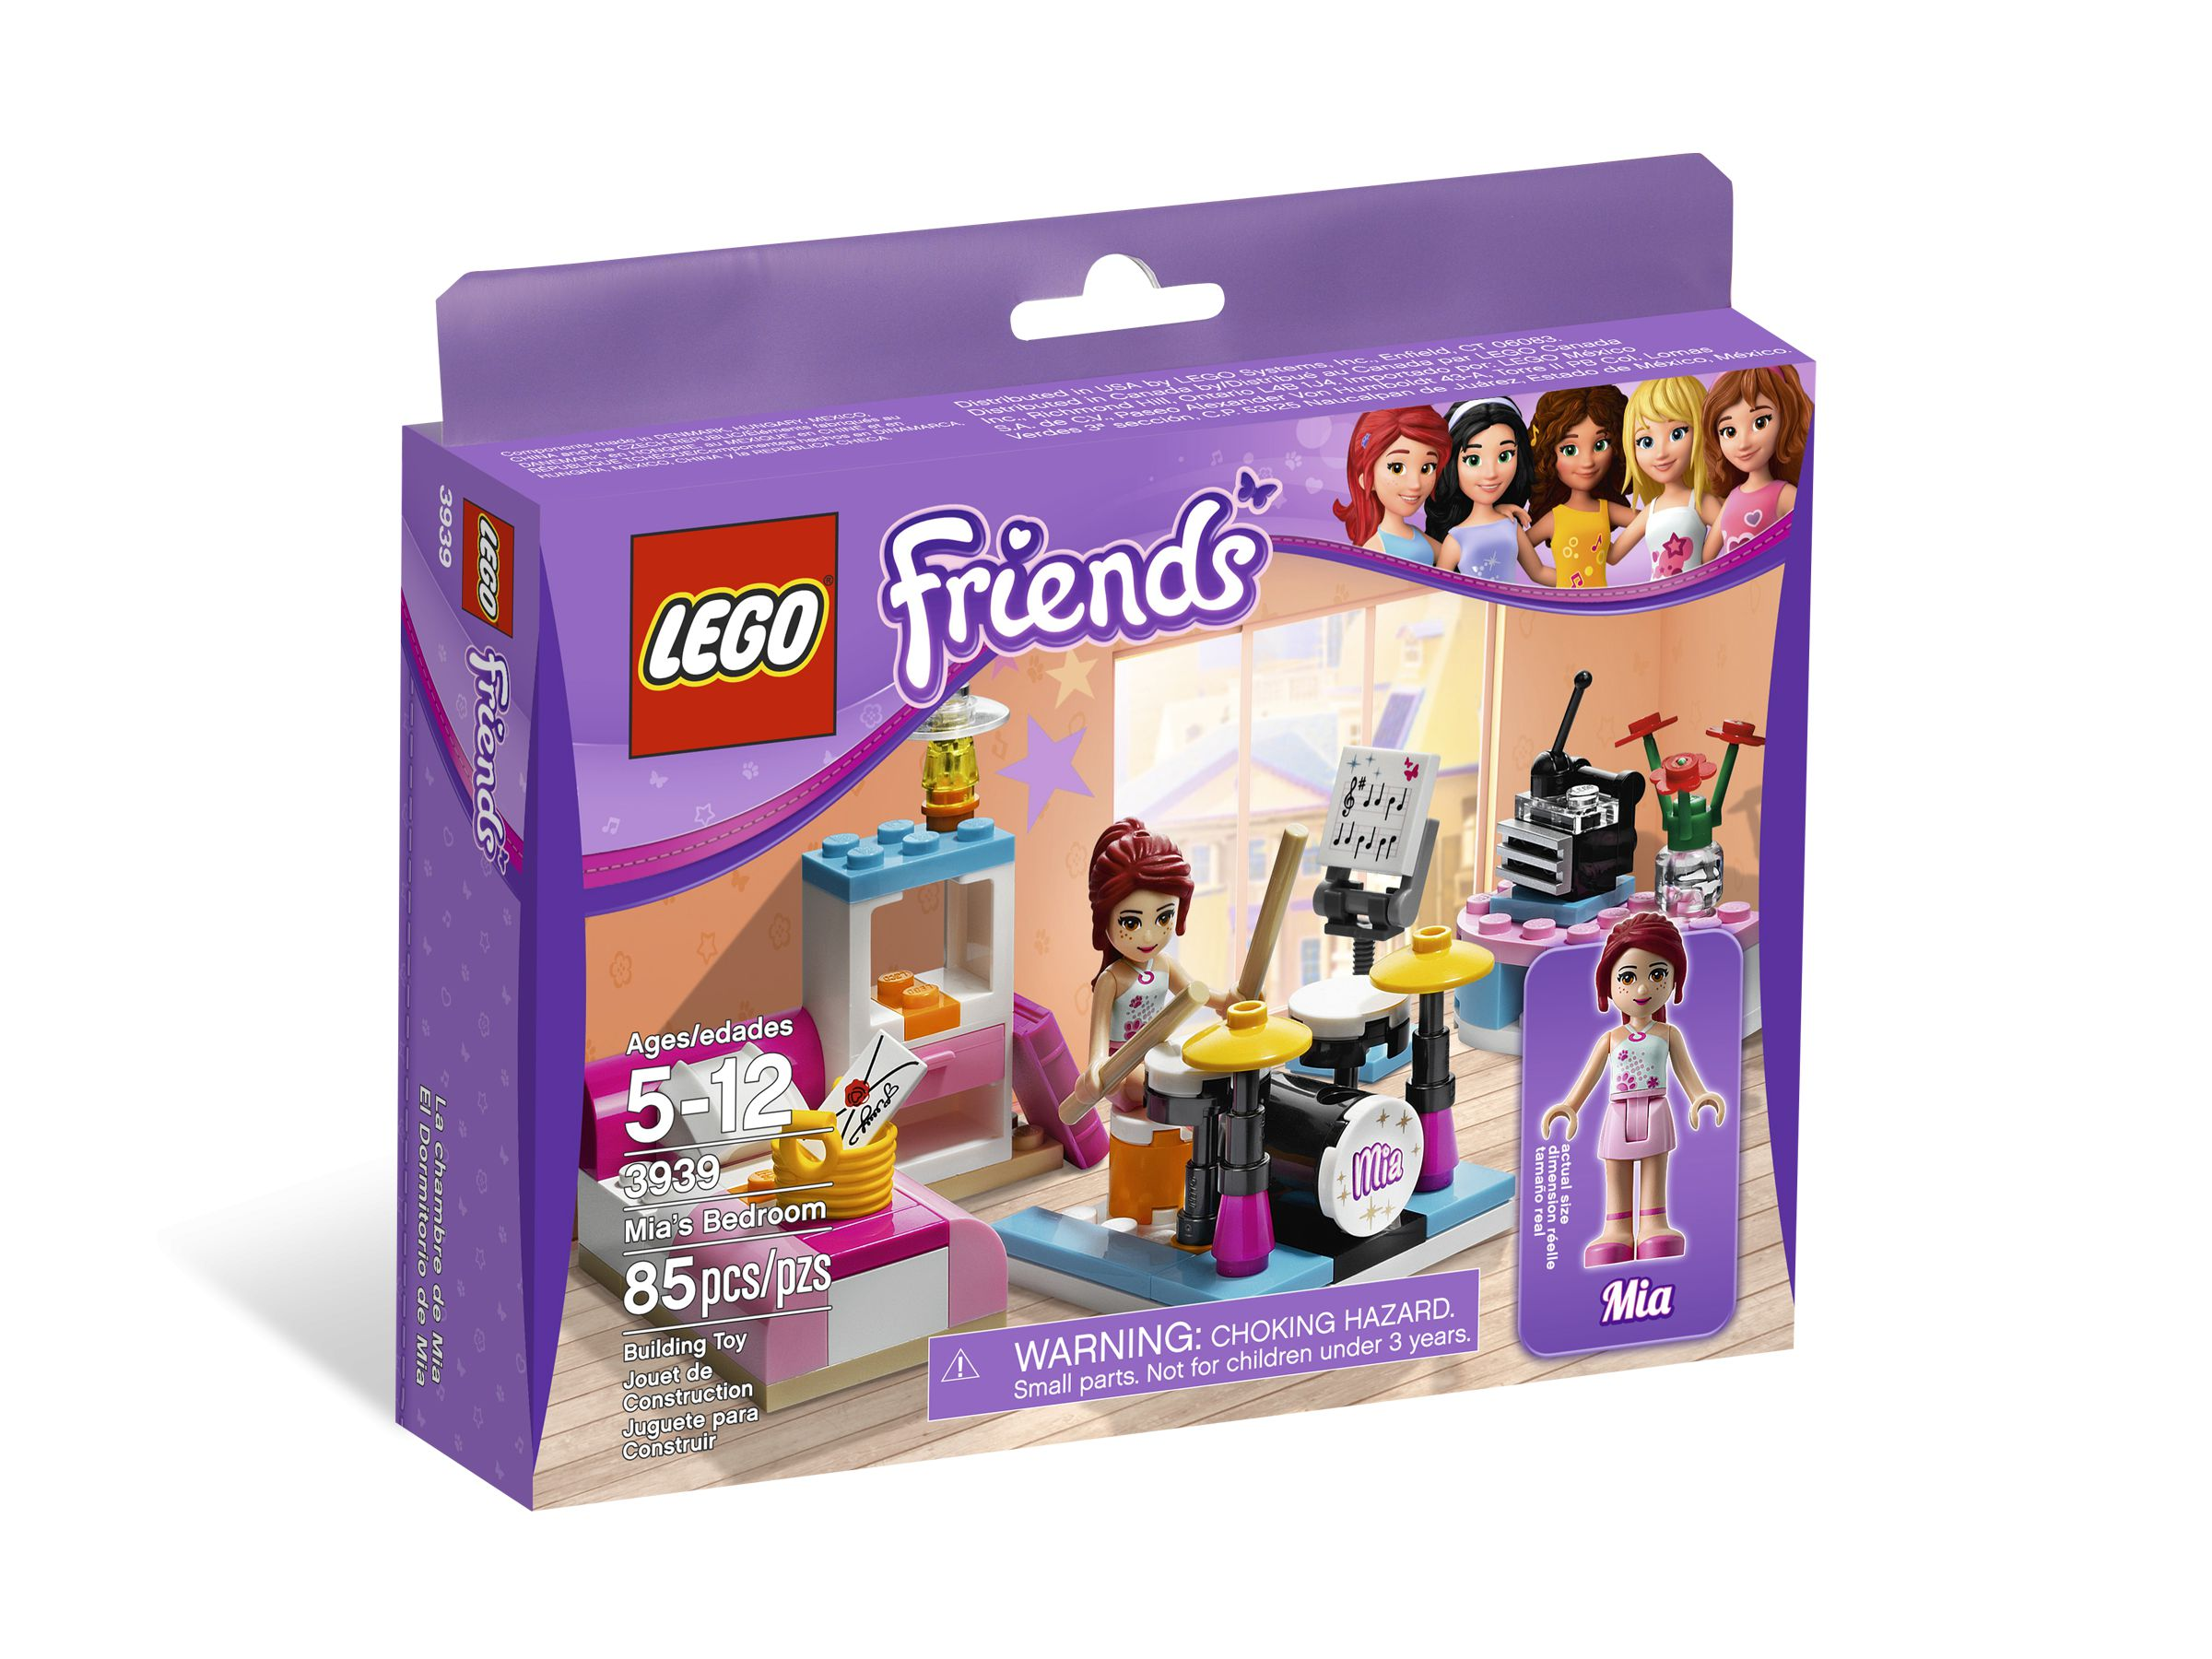 LEGO Friends 3939 Mia's Bedroom LEGO_3939_alt1.jpg